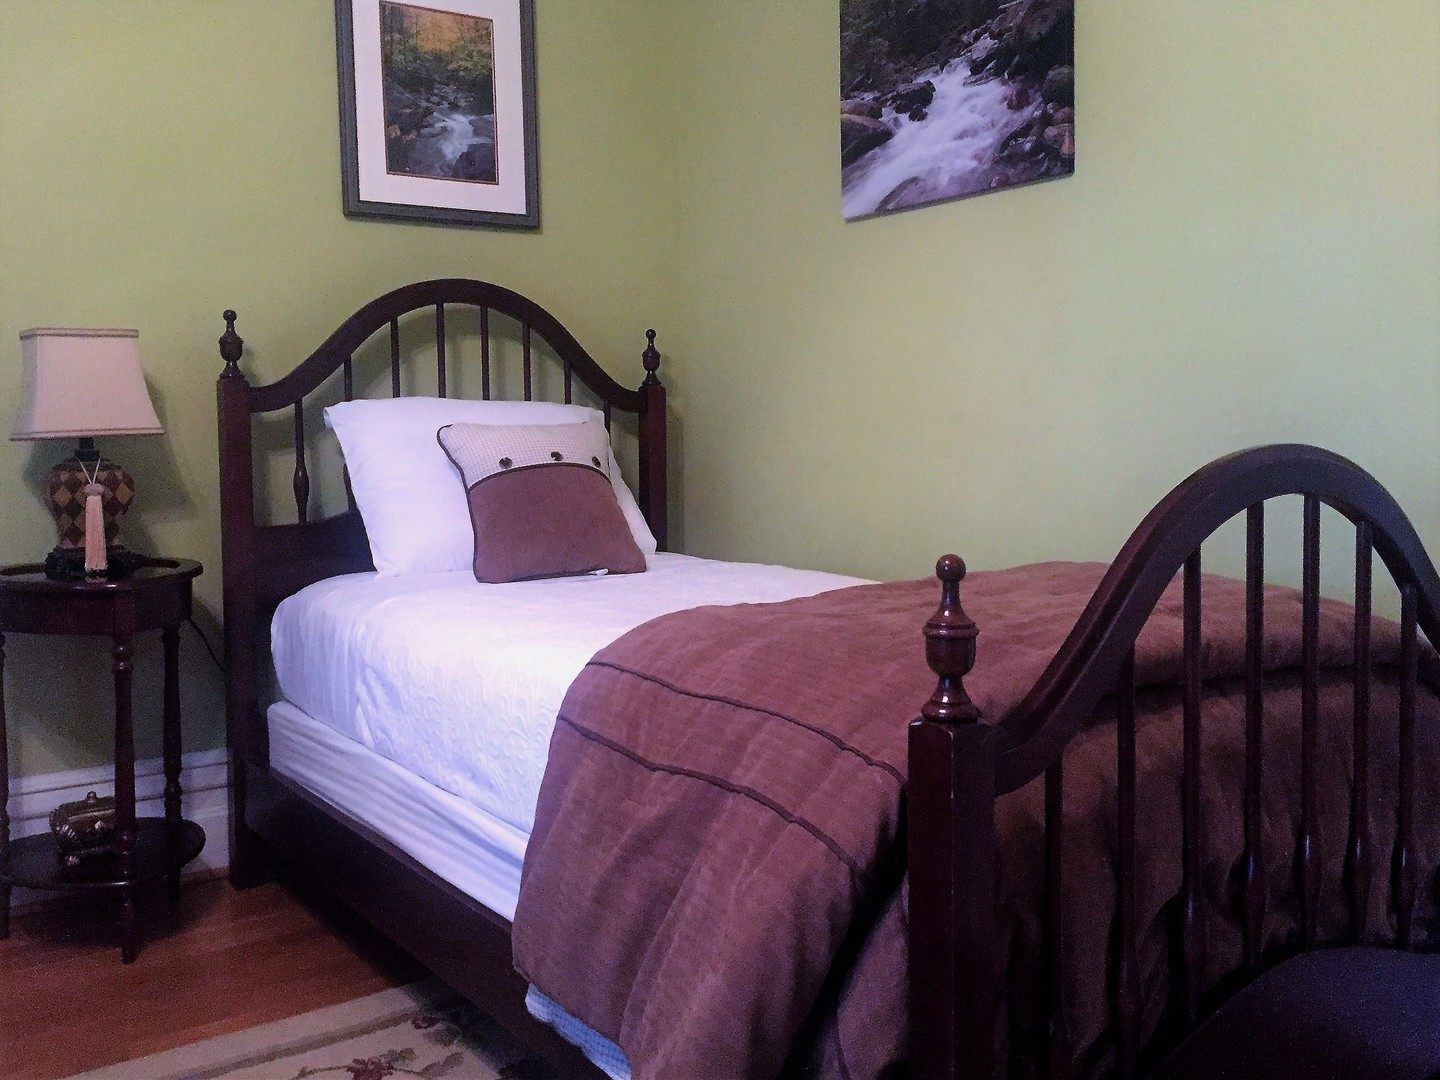 A bedroom with a large bed sitting in a room at Oak Hill on Love Lane Bed & Breakfast.